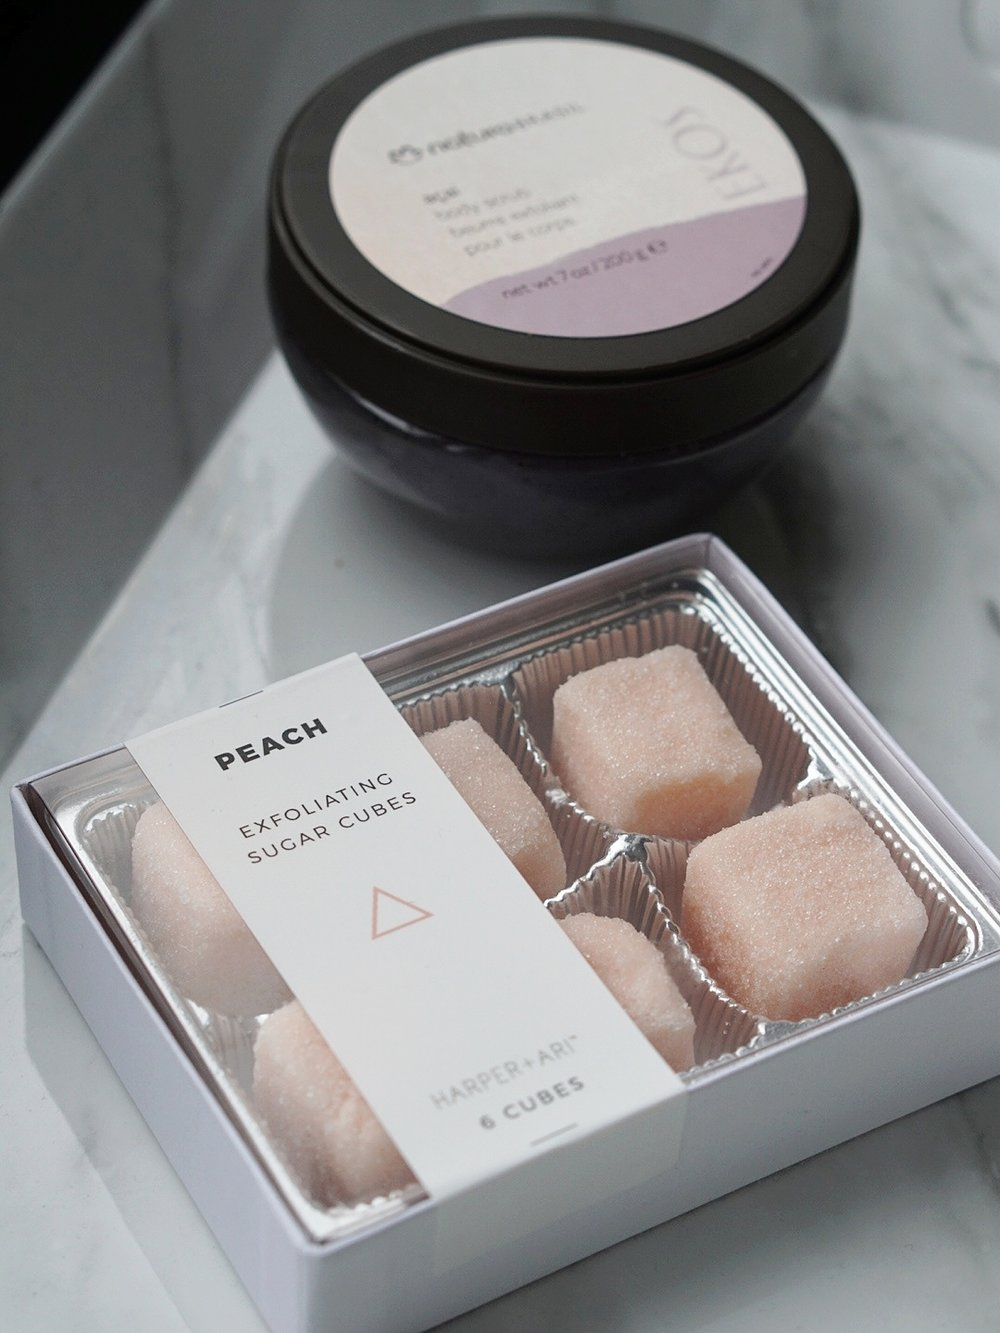 The cubes may look and smell edible, but they're really only designed to exfoliate.